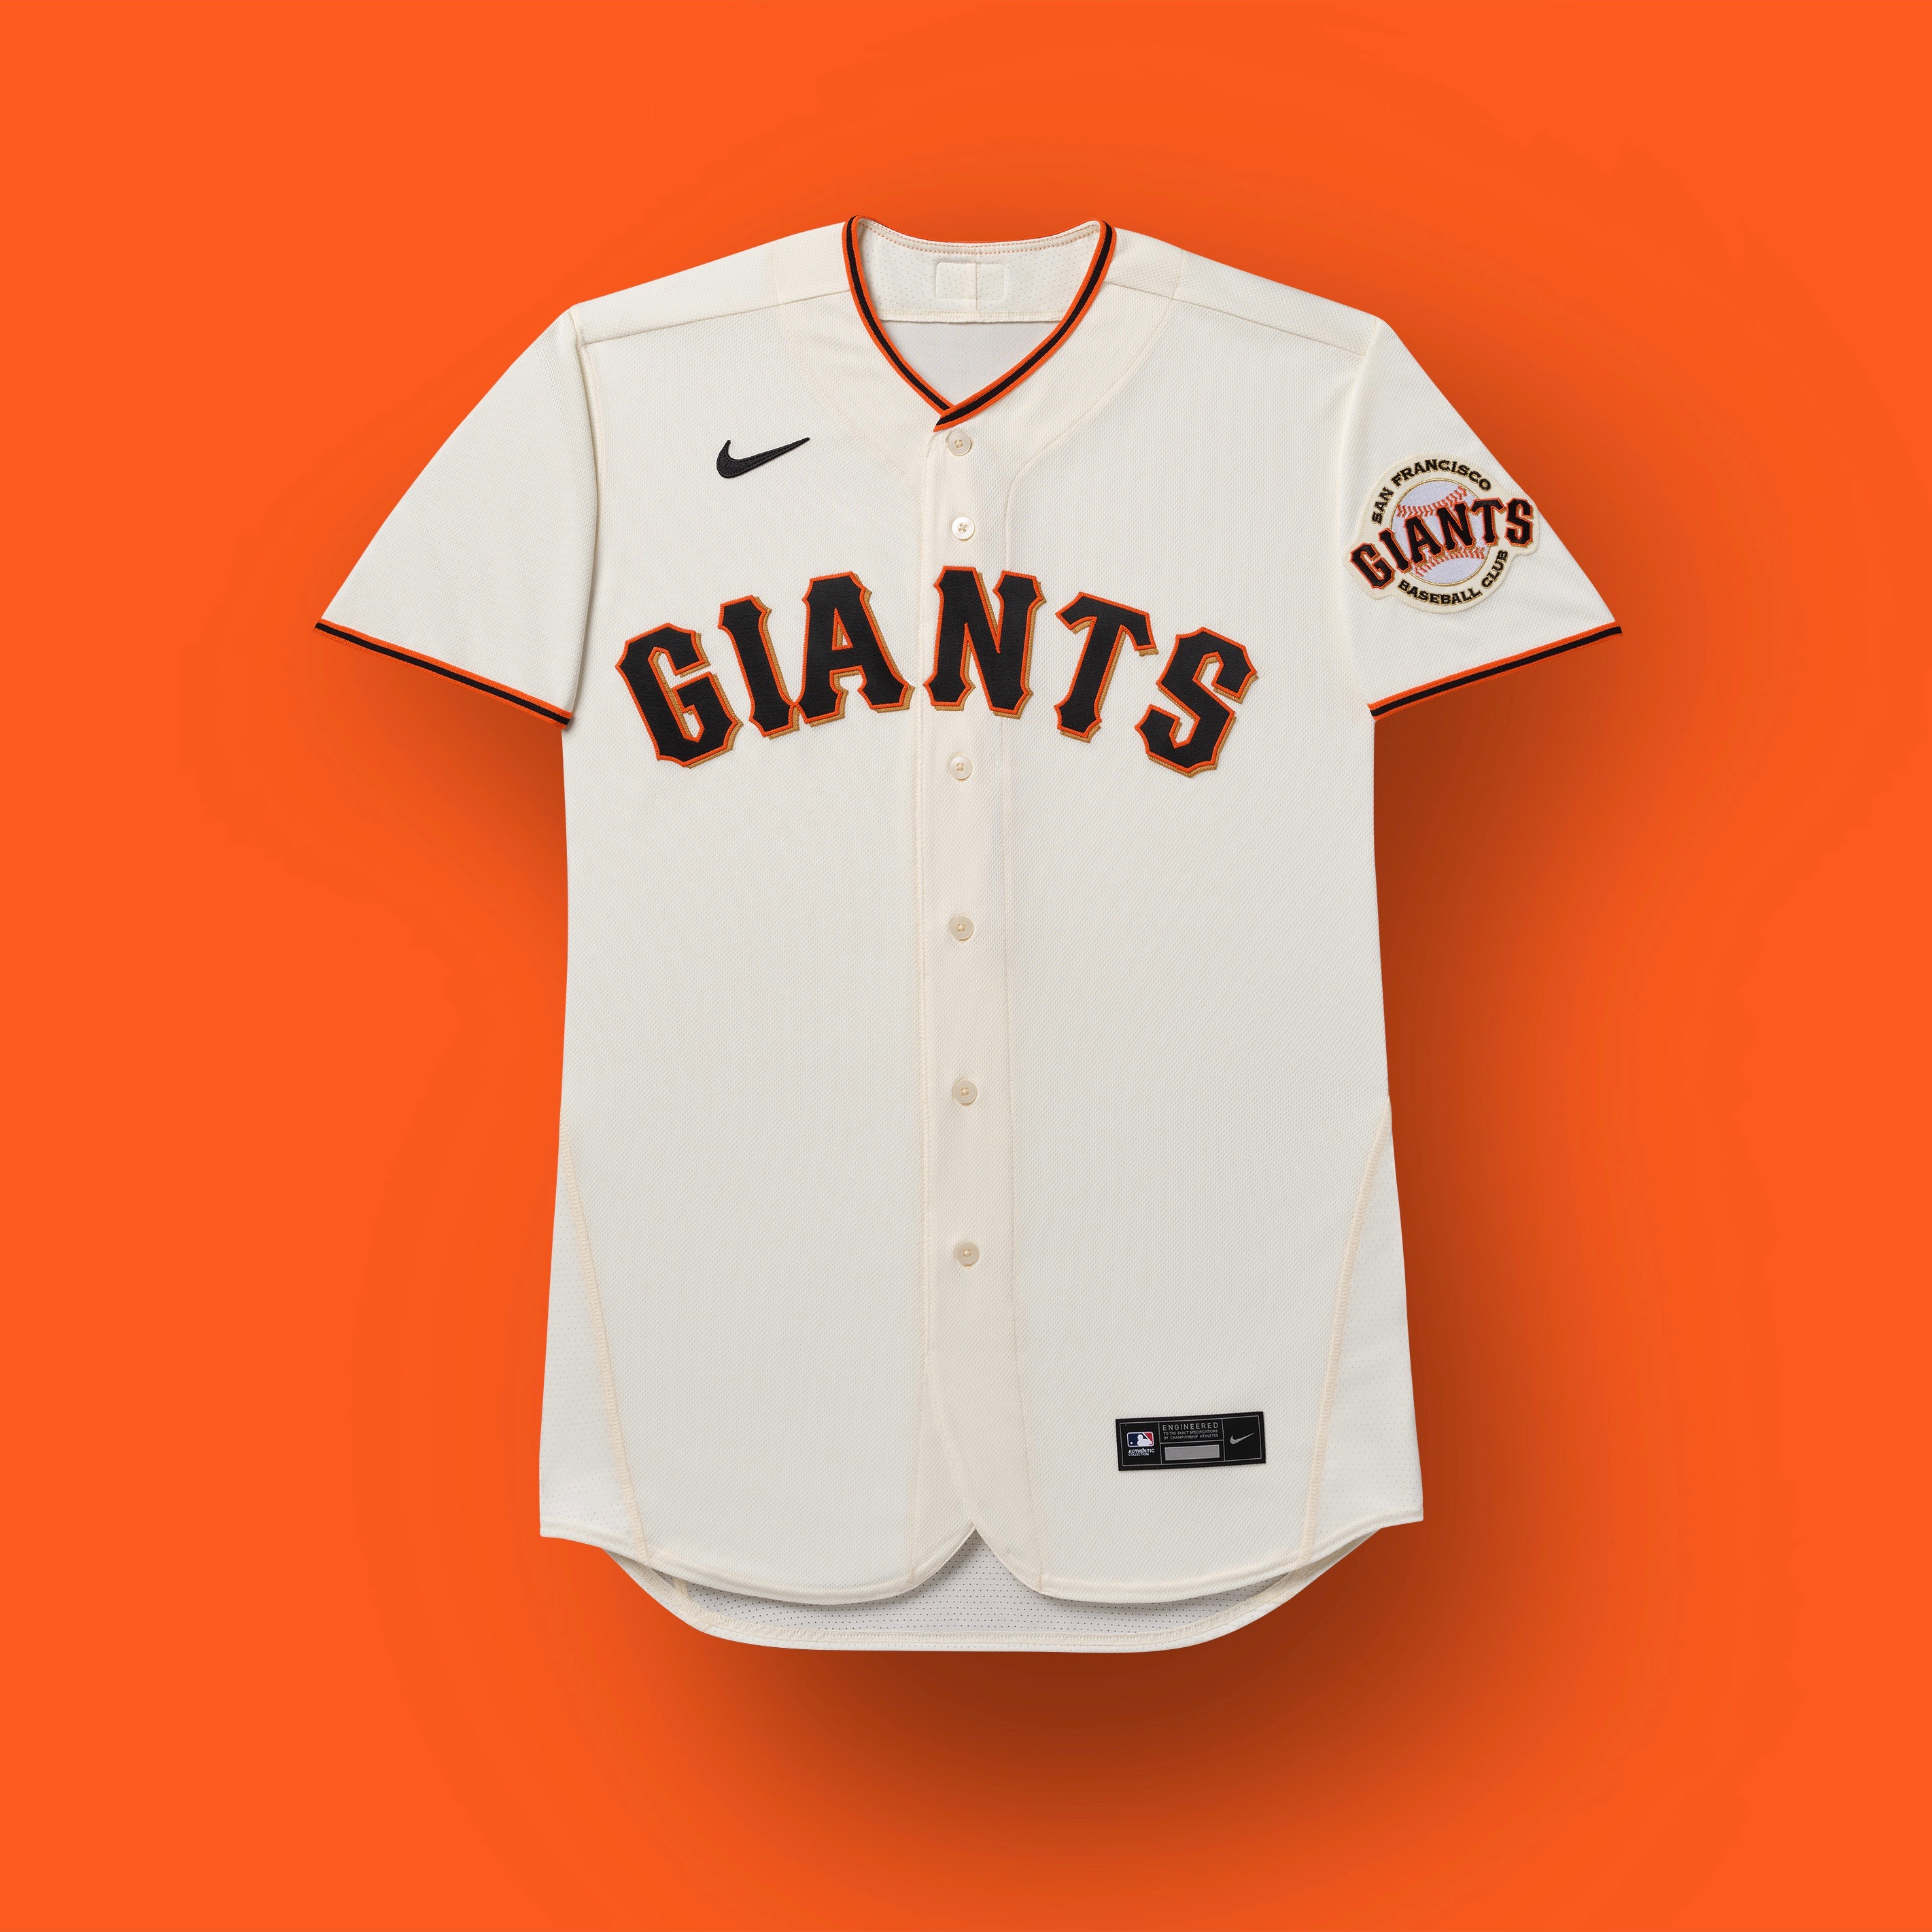 san francisco giants 2020 uniform